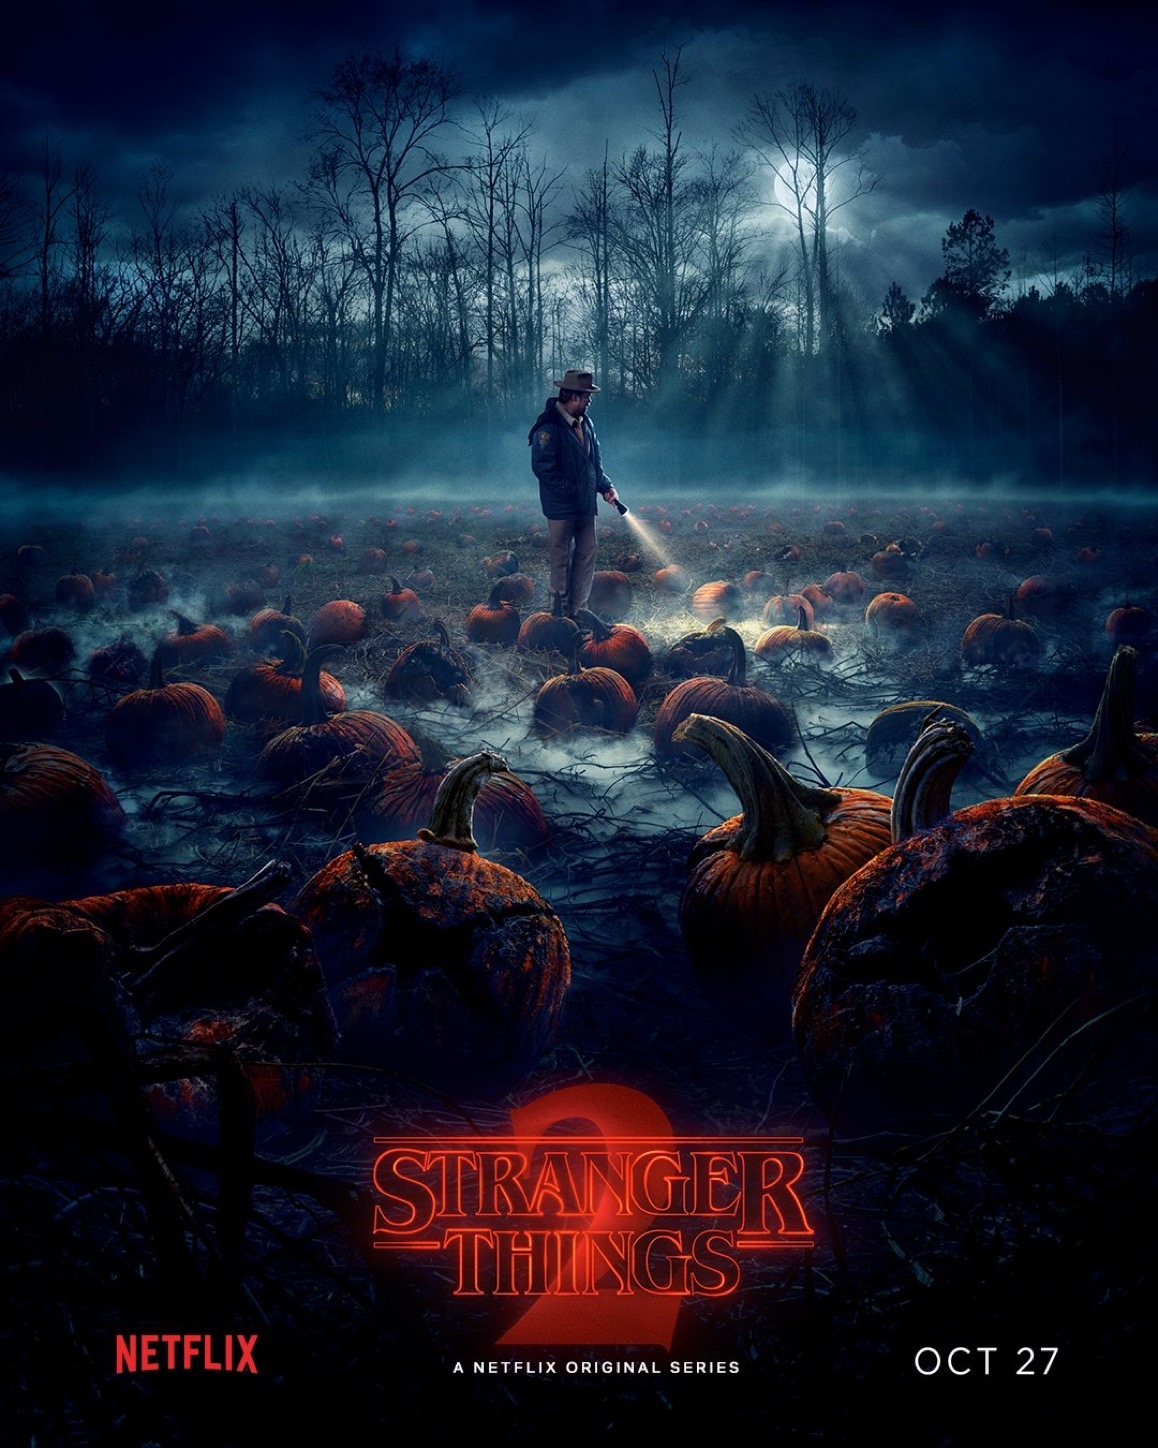 Movie Poster Stranger Things Season 2